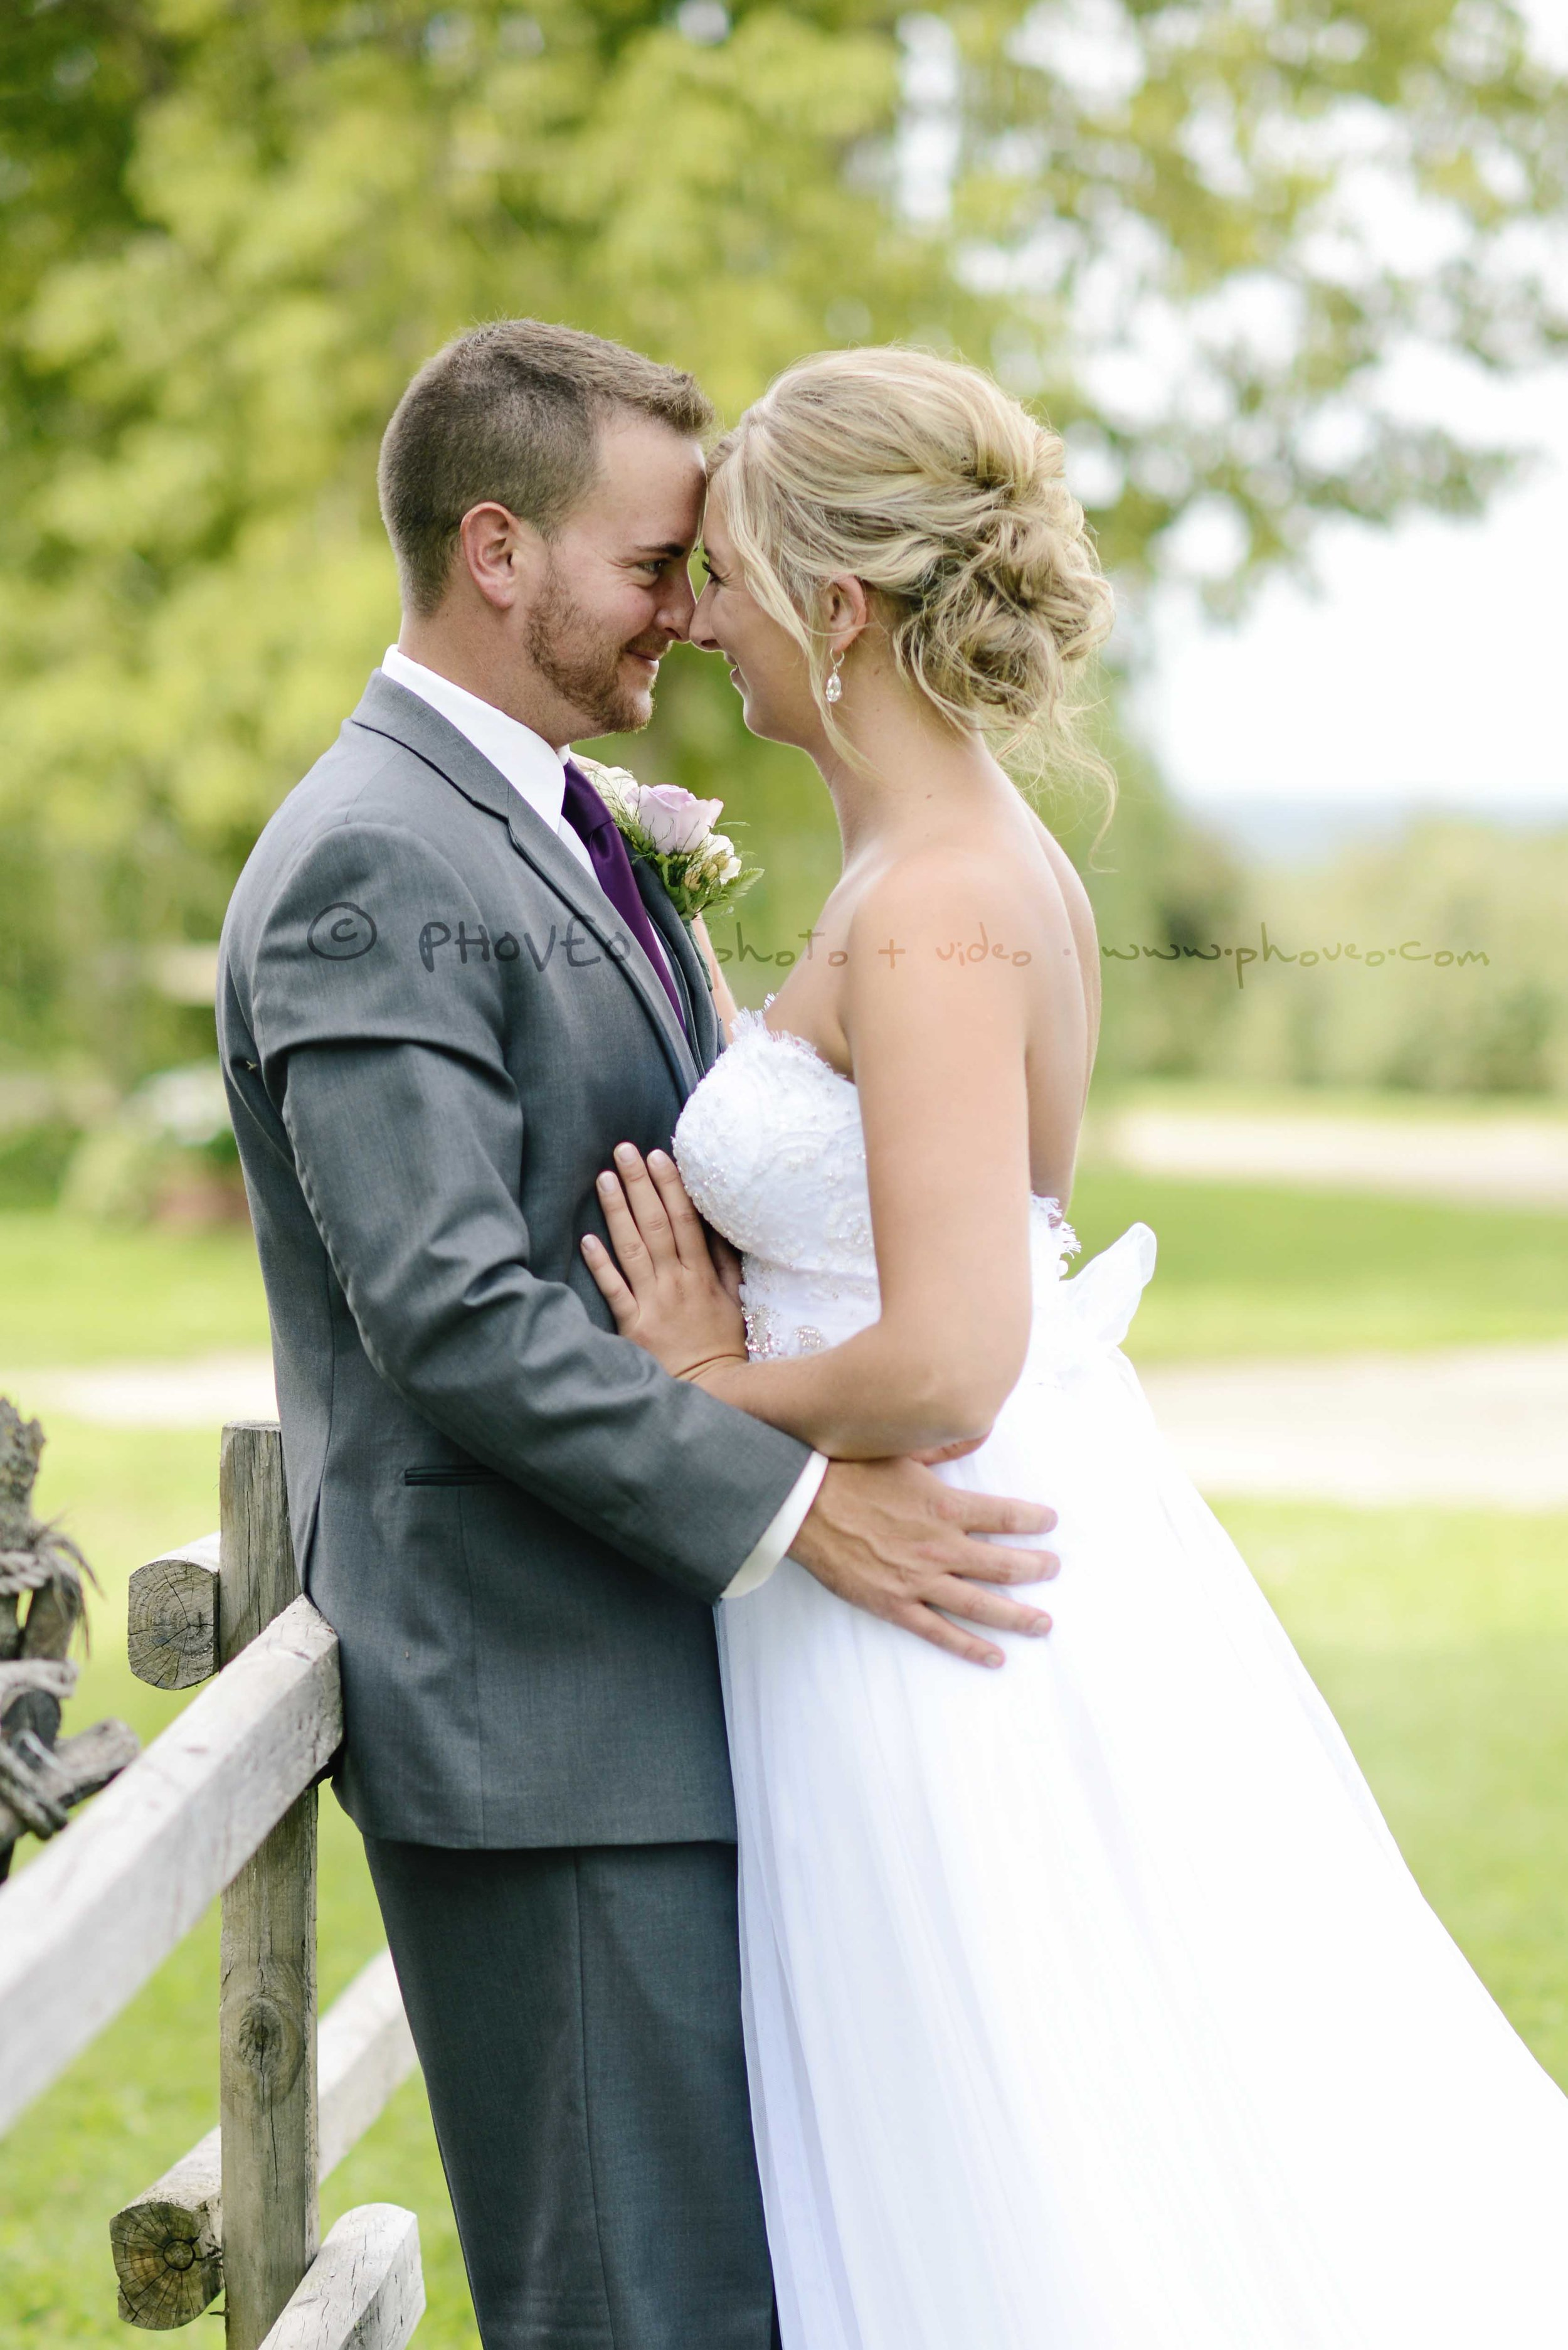 WM_20160826_Katelyn+Tony_8.jpg